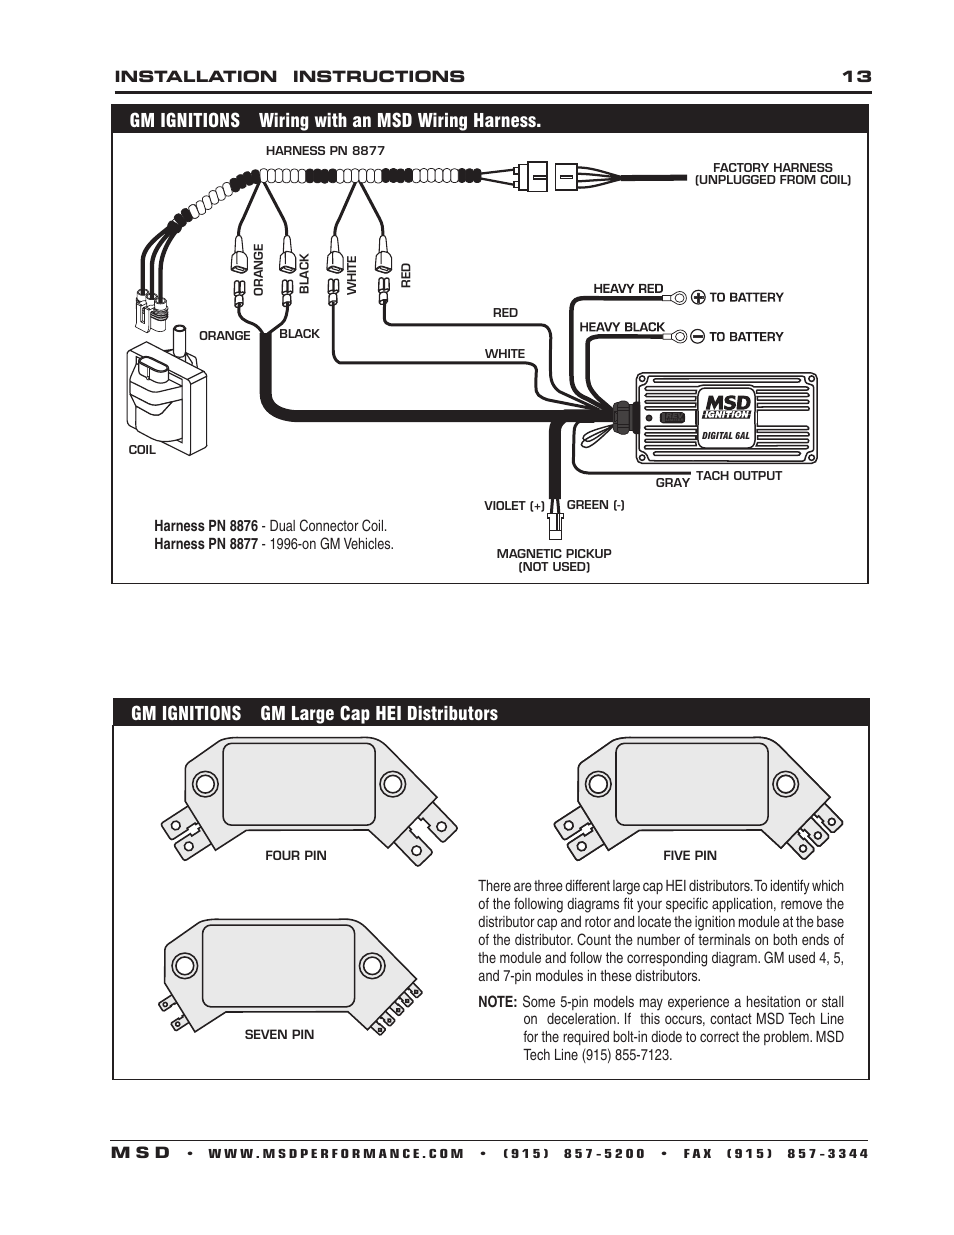 Gm Ignitions Wiring With An Msd Harness For Vehicles Large Cap Hei Distributors 6201 Digital 6a Ignition Control User Manual Page 13 20